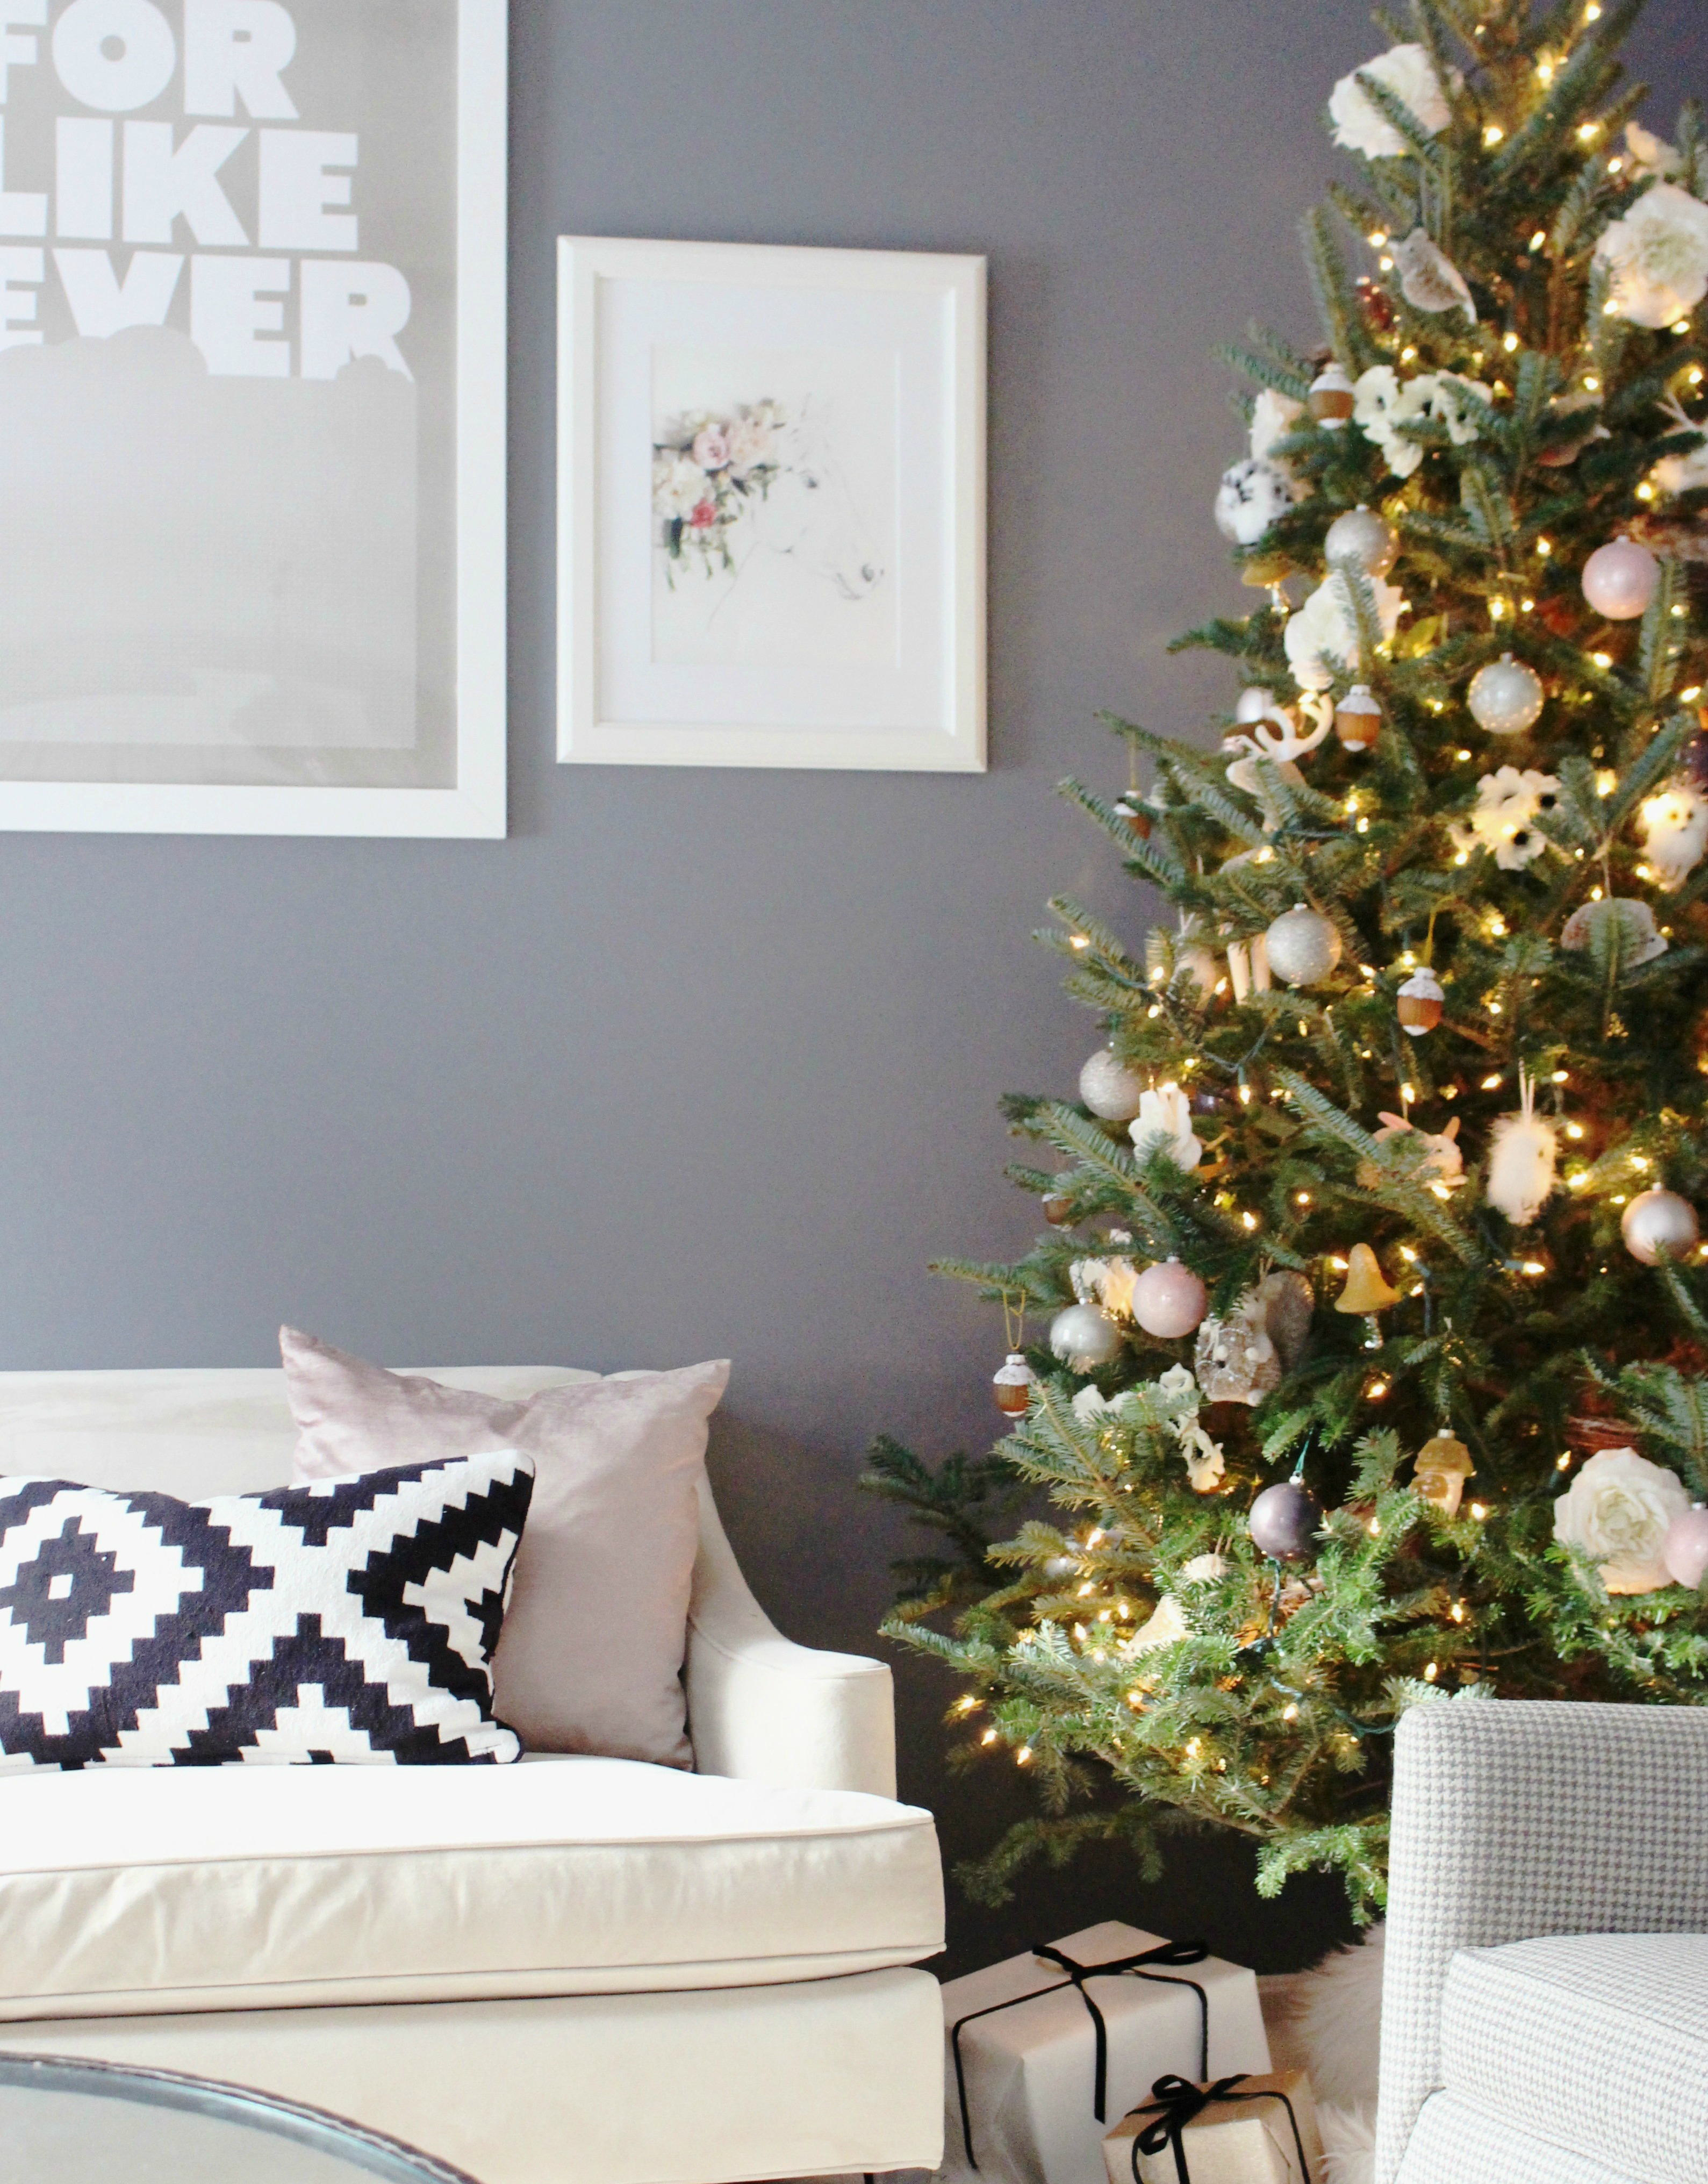 Zoe With Love shares her Christmas living room home decor featuring a floral inspired Christmas Tree